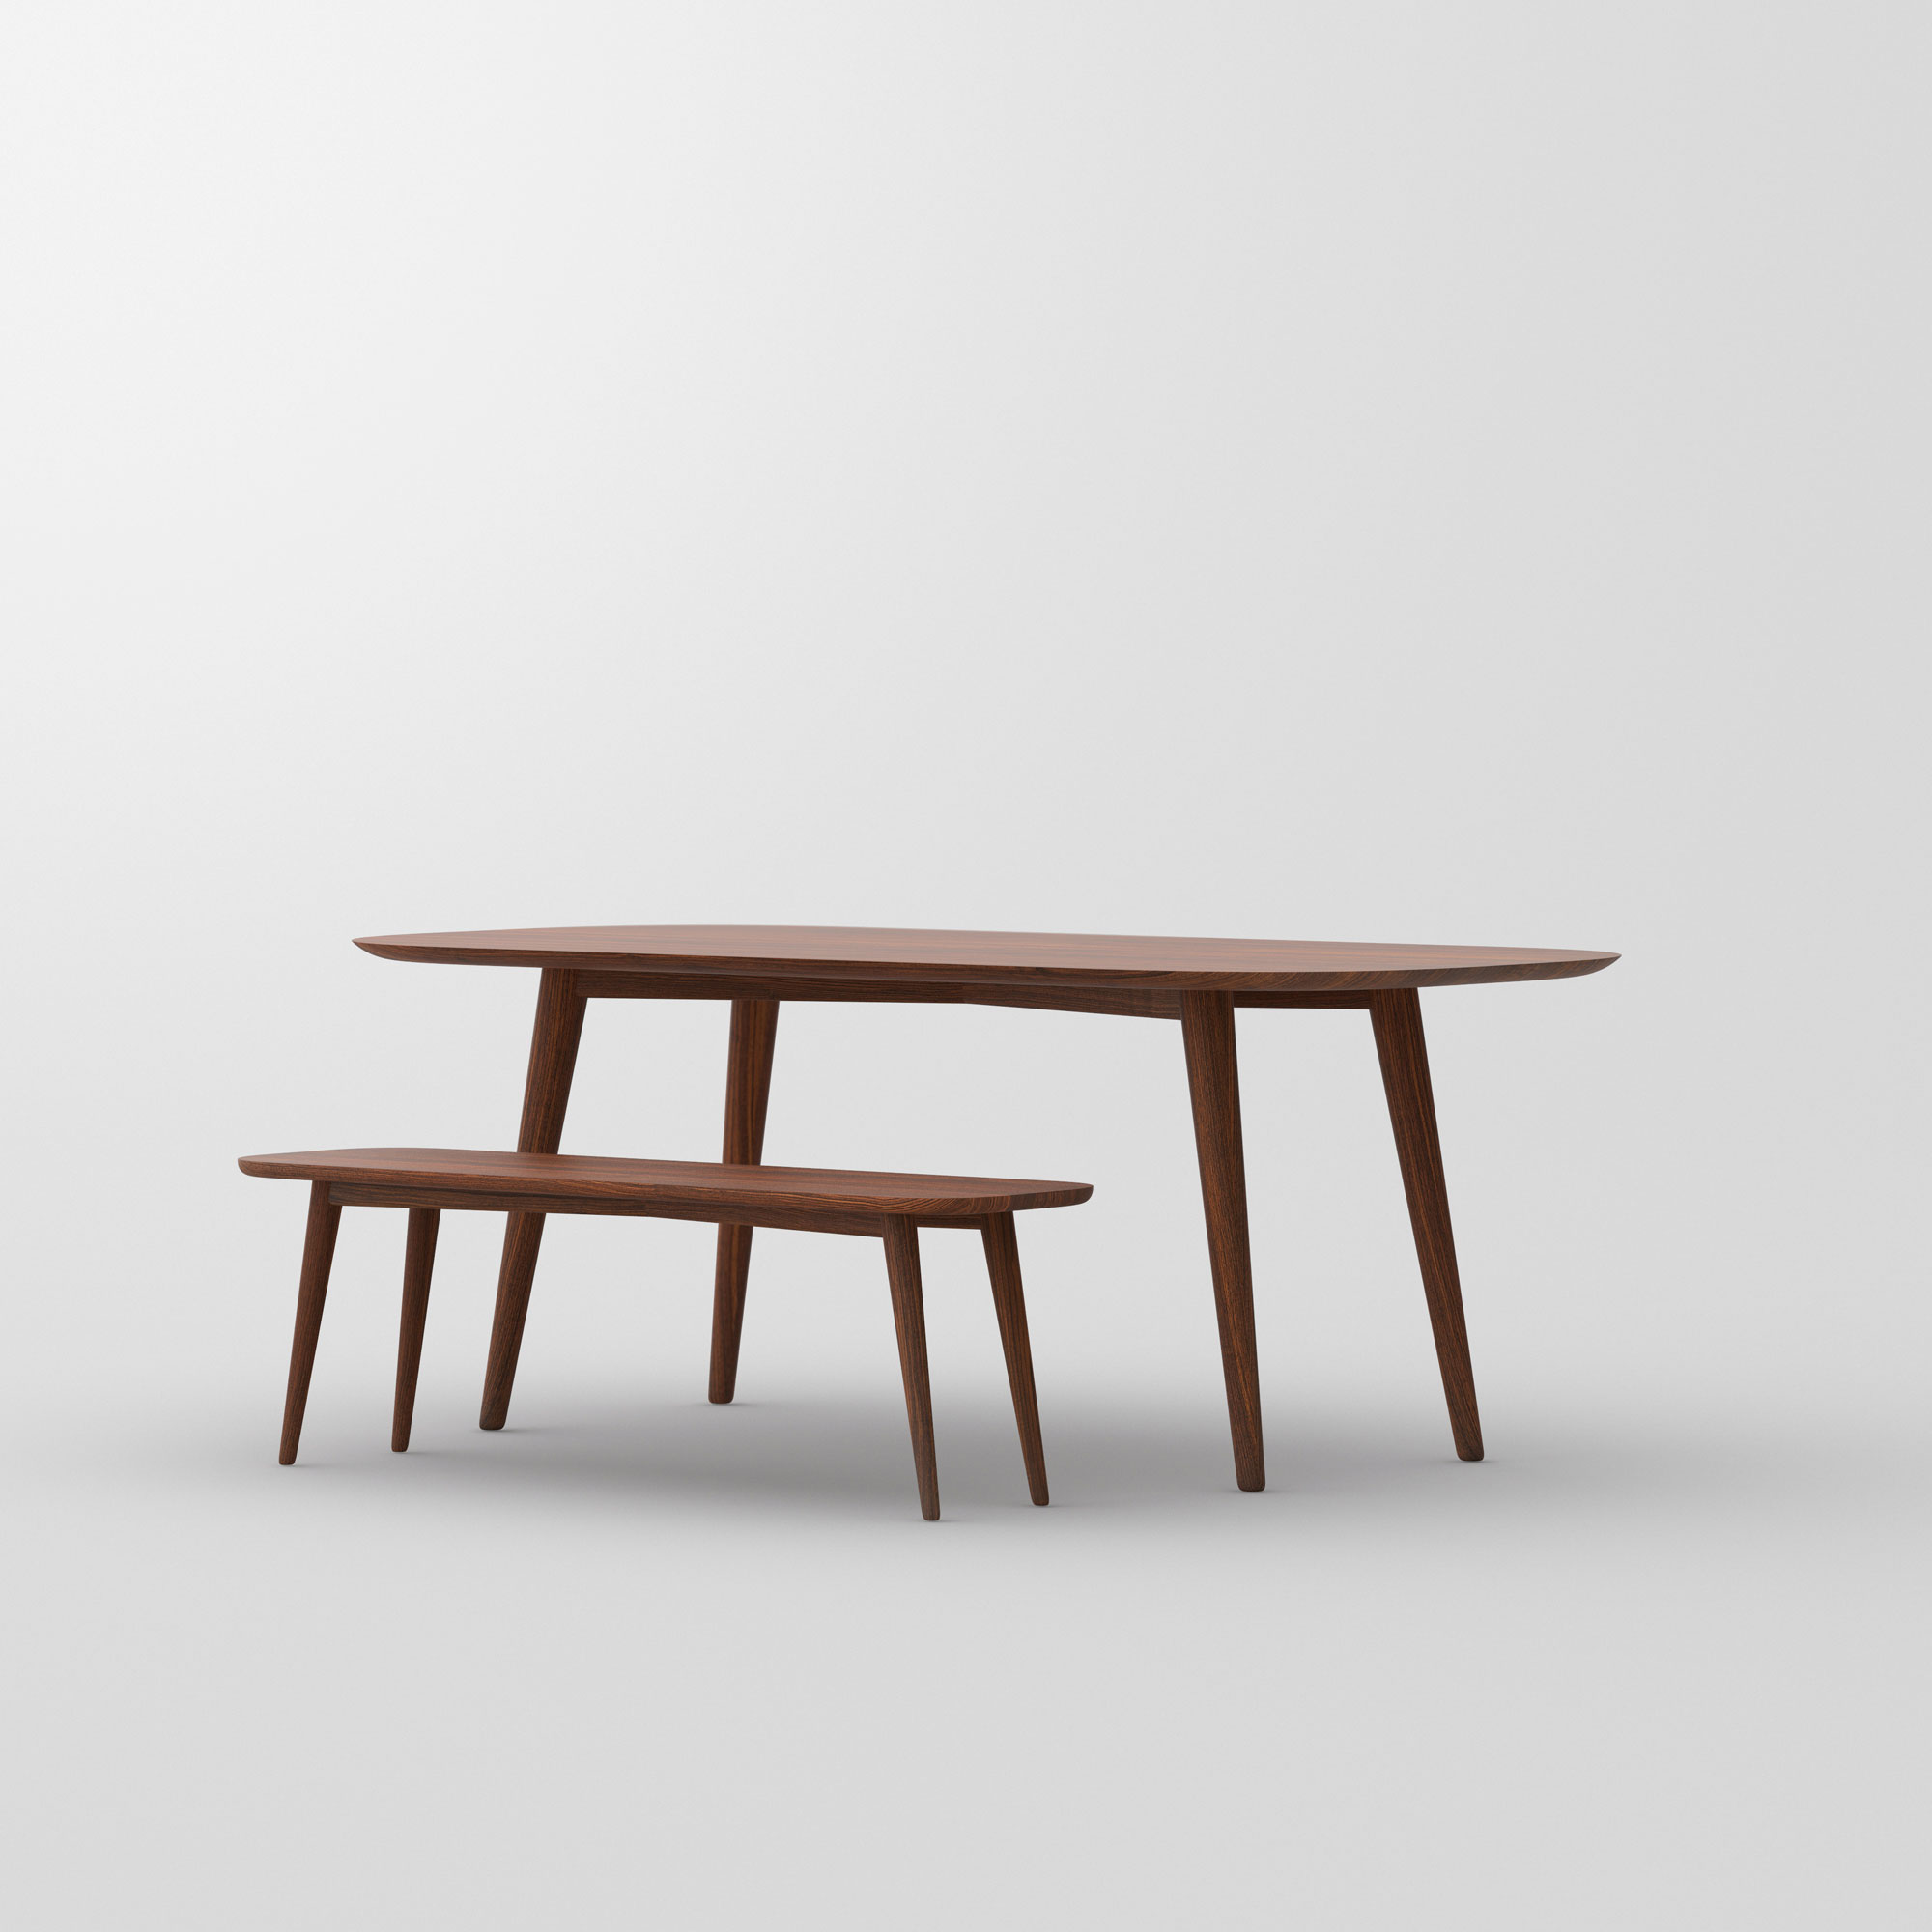 Designer Bench AMBIO vitamin-design custom made in solid wood by vitamin design